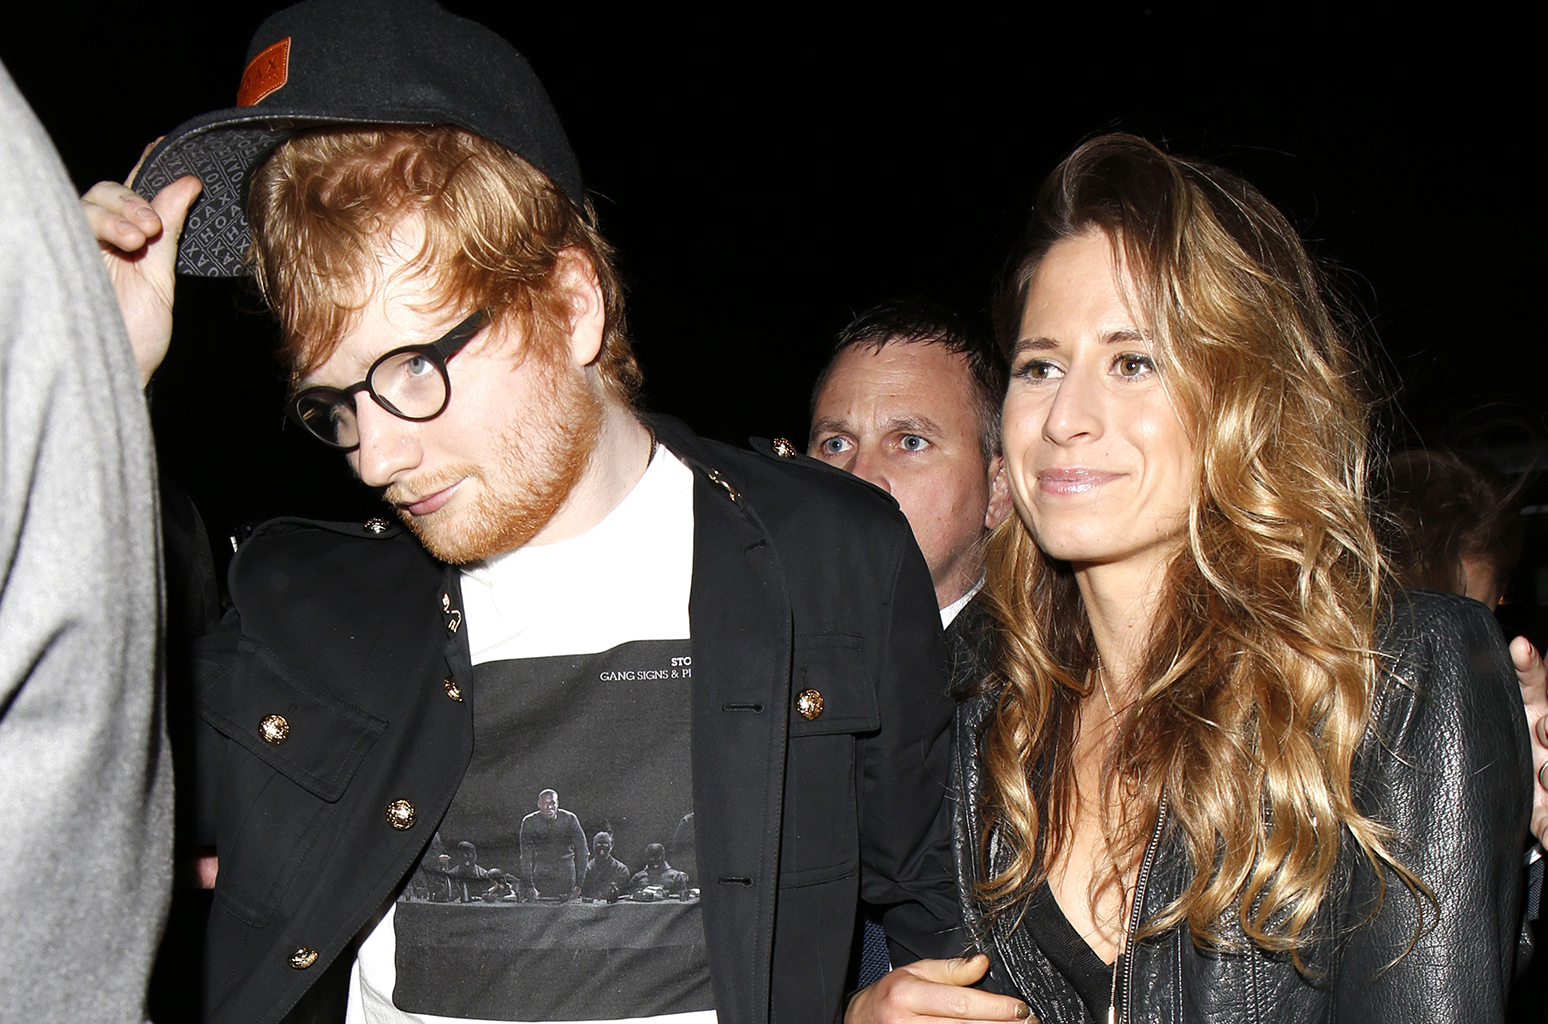 Famous British Singer, Ed Sheeran Confirms Marriage To Long-Time Girlfriend